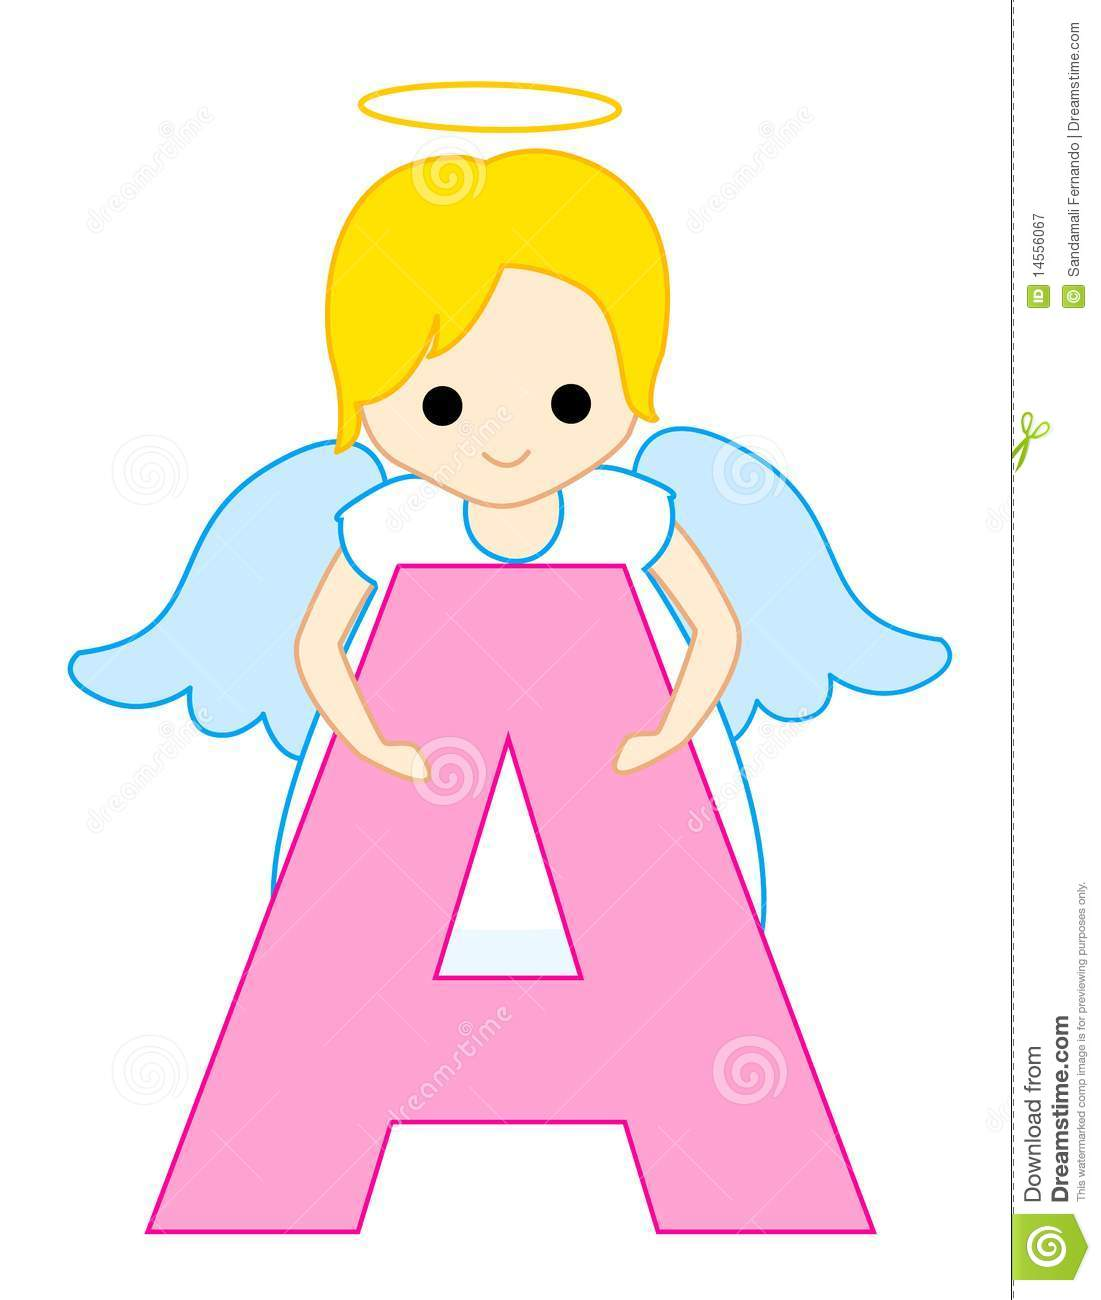 Downloads Colouring In Colouring in all the letters of the alphabet helps for learning them Give your child lots of crayons or coloured pencils and then